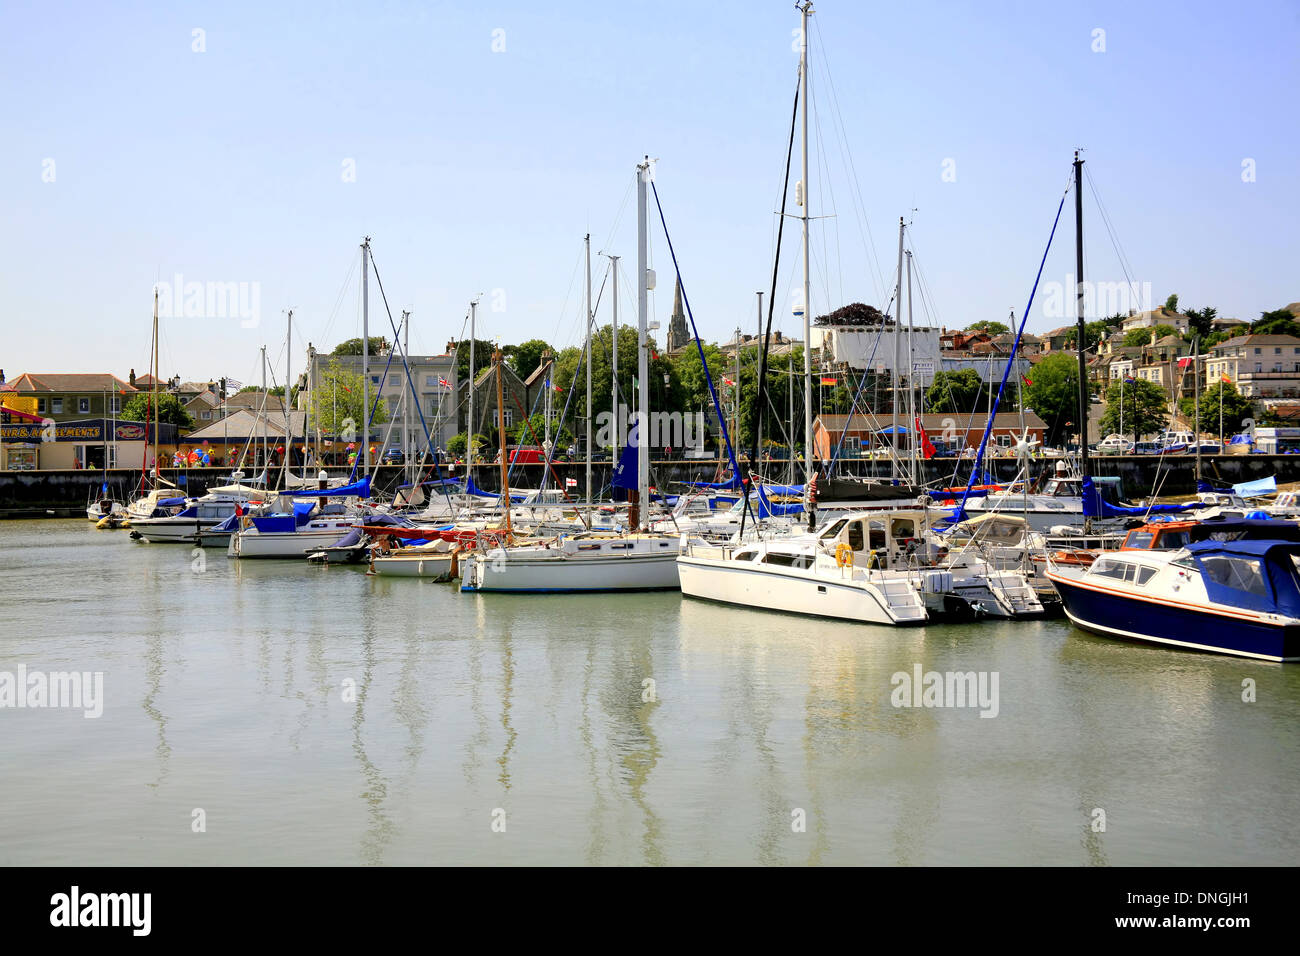 The Harbor at Ryde, Isle of Wight, England, UK - Stock Image